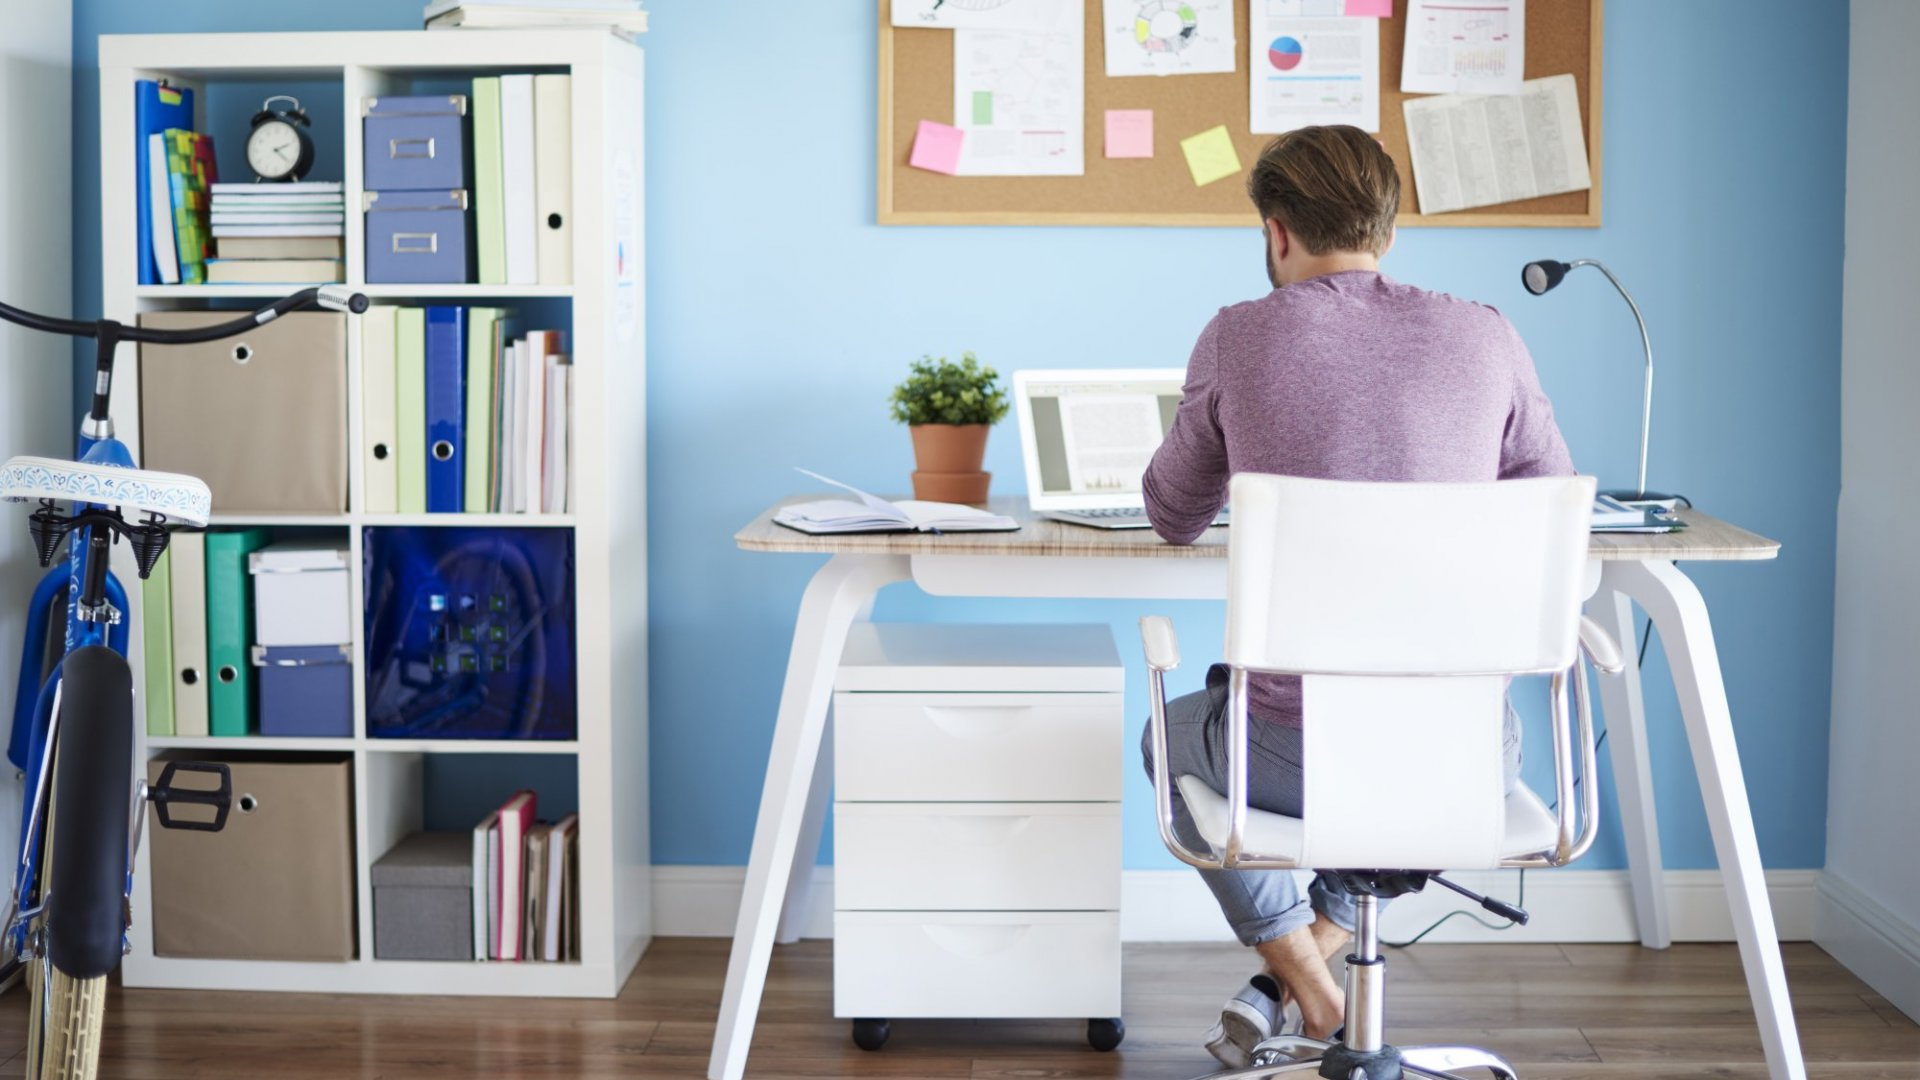 Managing Your Well-Being While in a Work-From-Home Environment